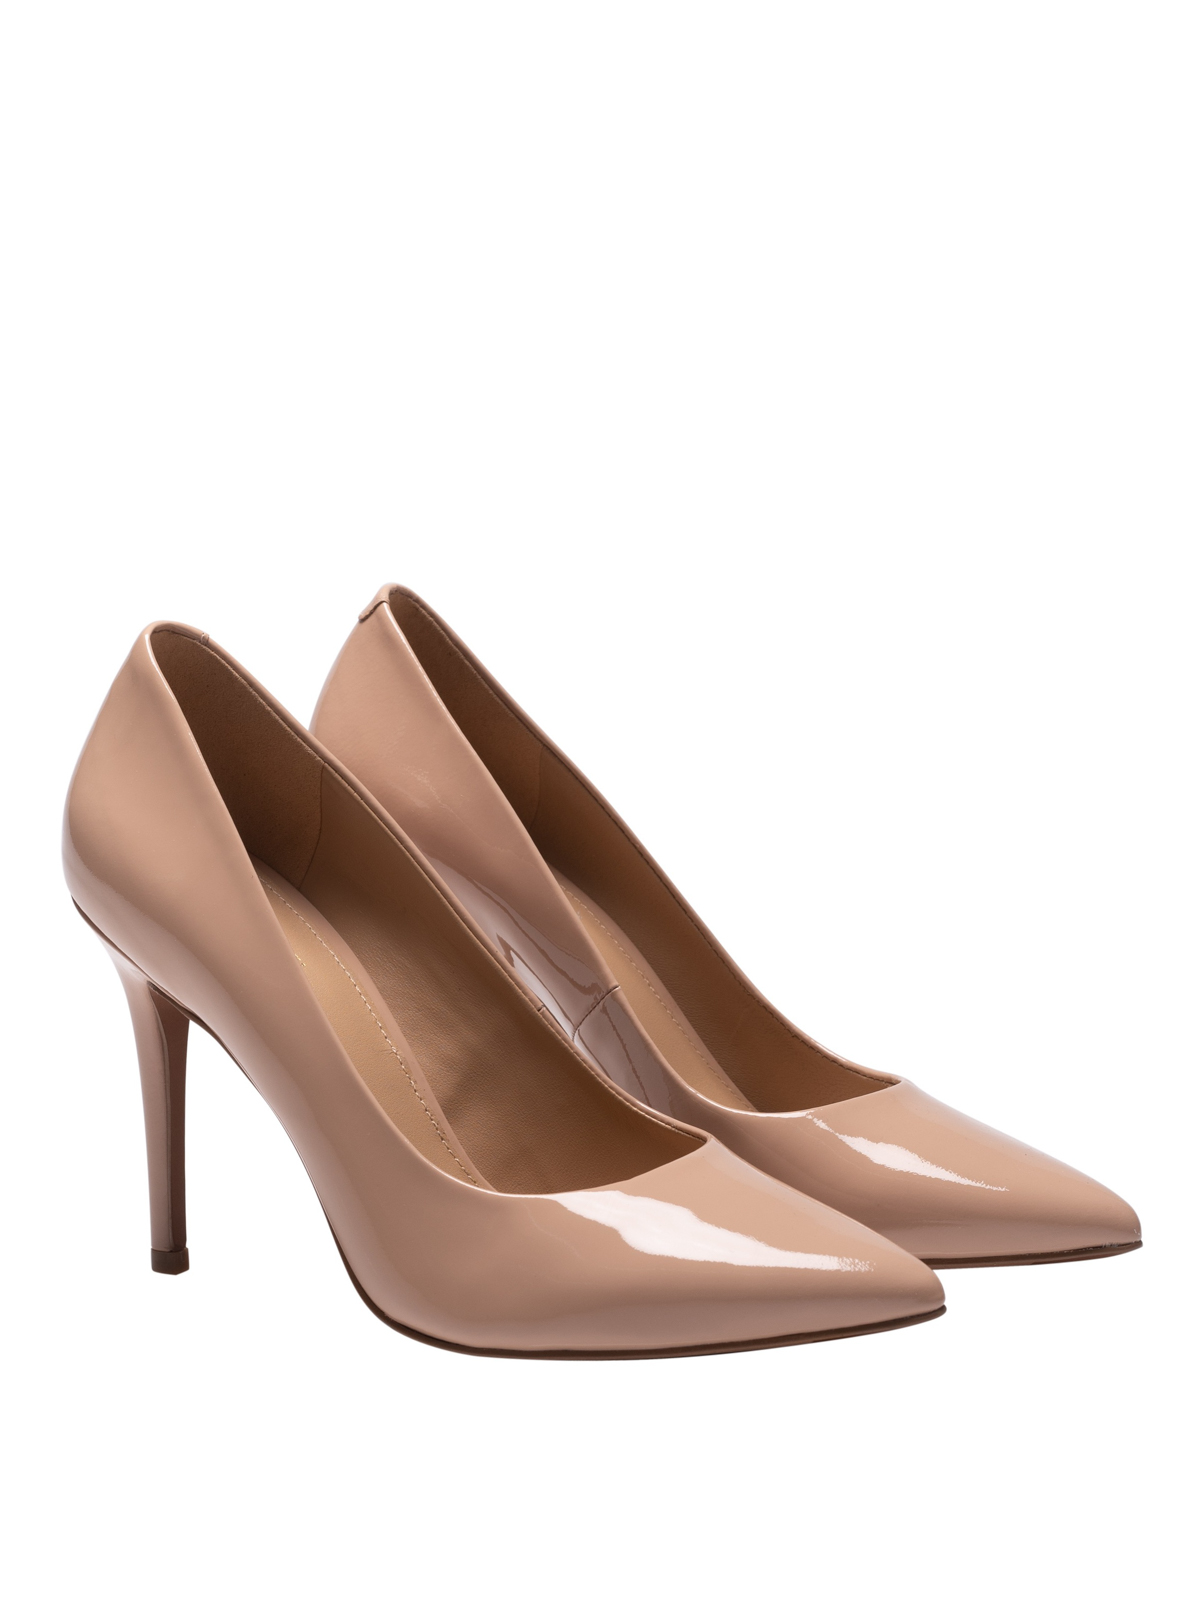 Claire nude patent leather pumps